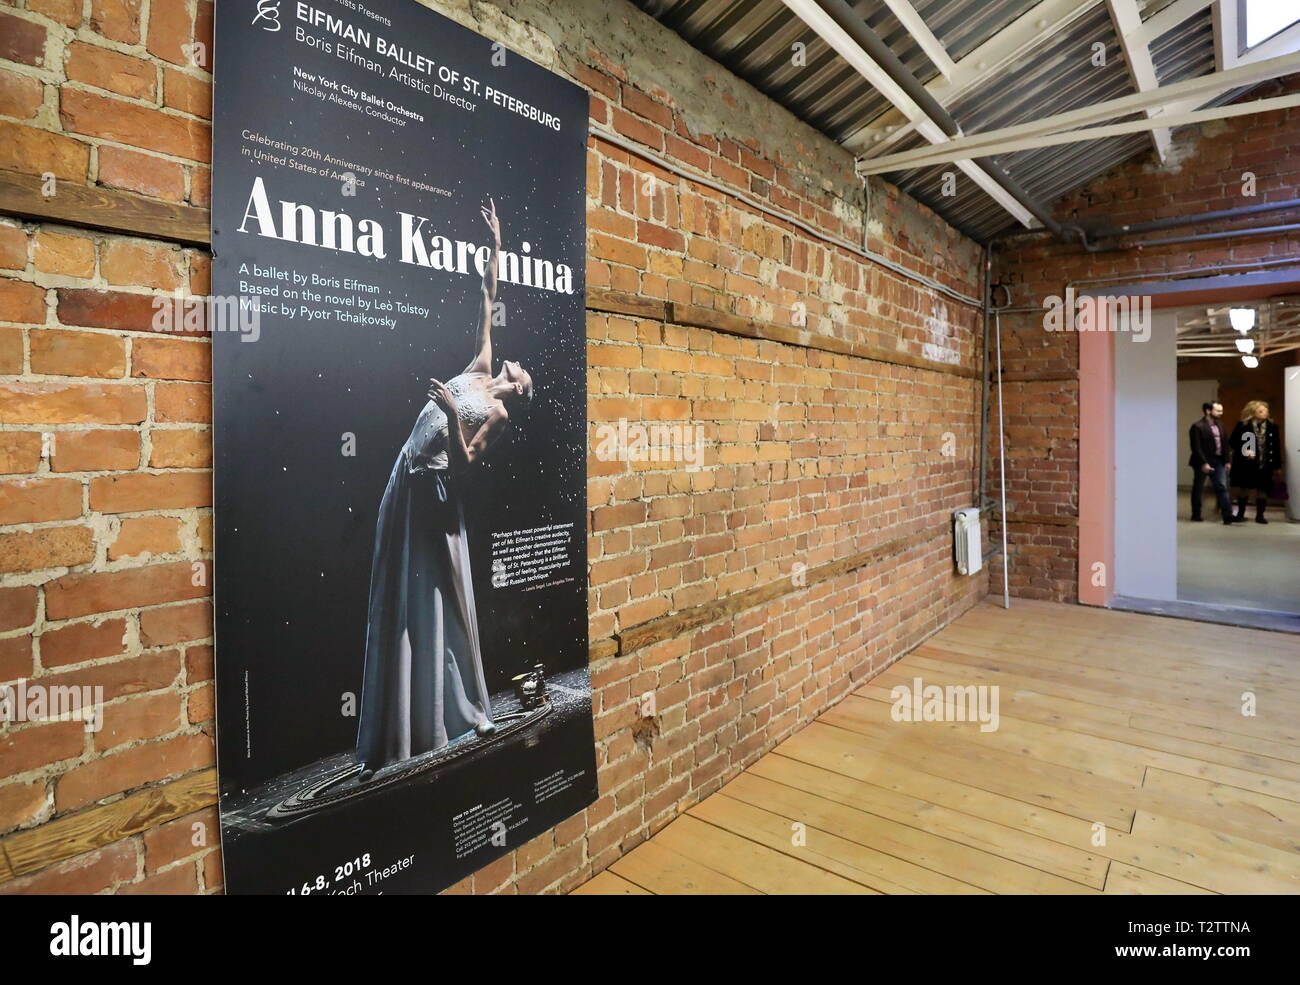 St Petersburg, Russia. 04th Apr, 2019. ST PETERSBURG, RUSSIA - APRIL 4, 2019: A poster promoting the Anna Karenina ballet production at the St Petersburg State Academic Ballet Theatre's newly opened art workshops; they occupy the renovated building of the former Got rope factory. Alexander Demianchuk/TASS Credit: ITAR-TASS News Agency/Alamy Live News - Stock Image